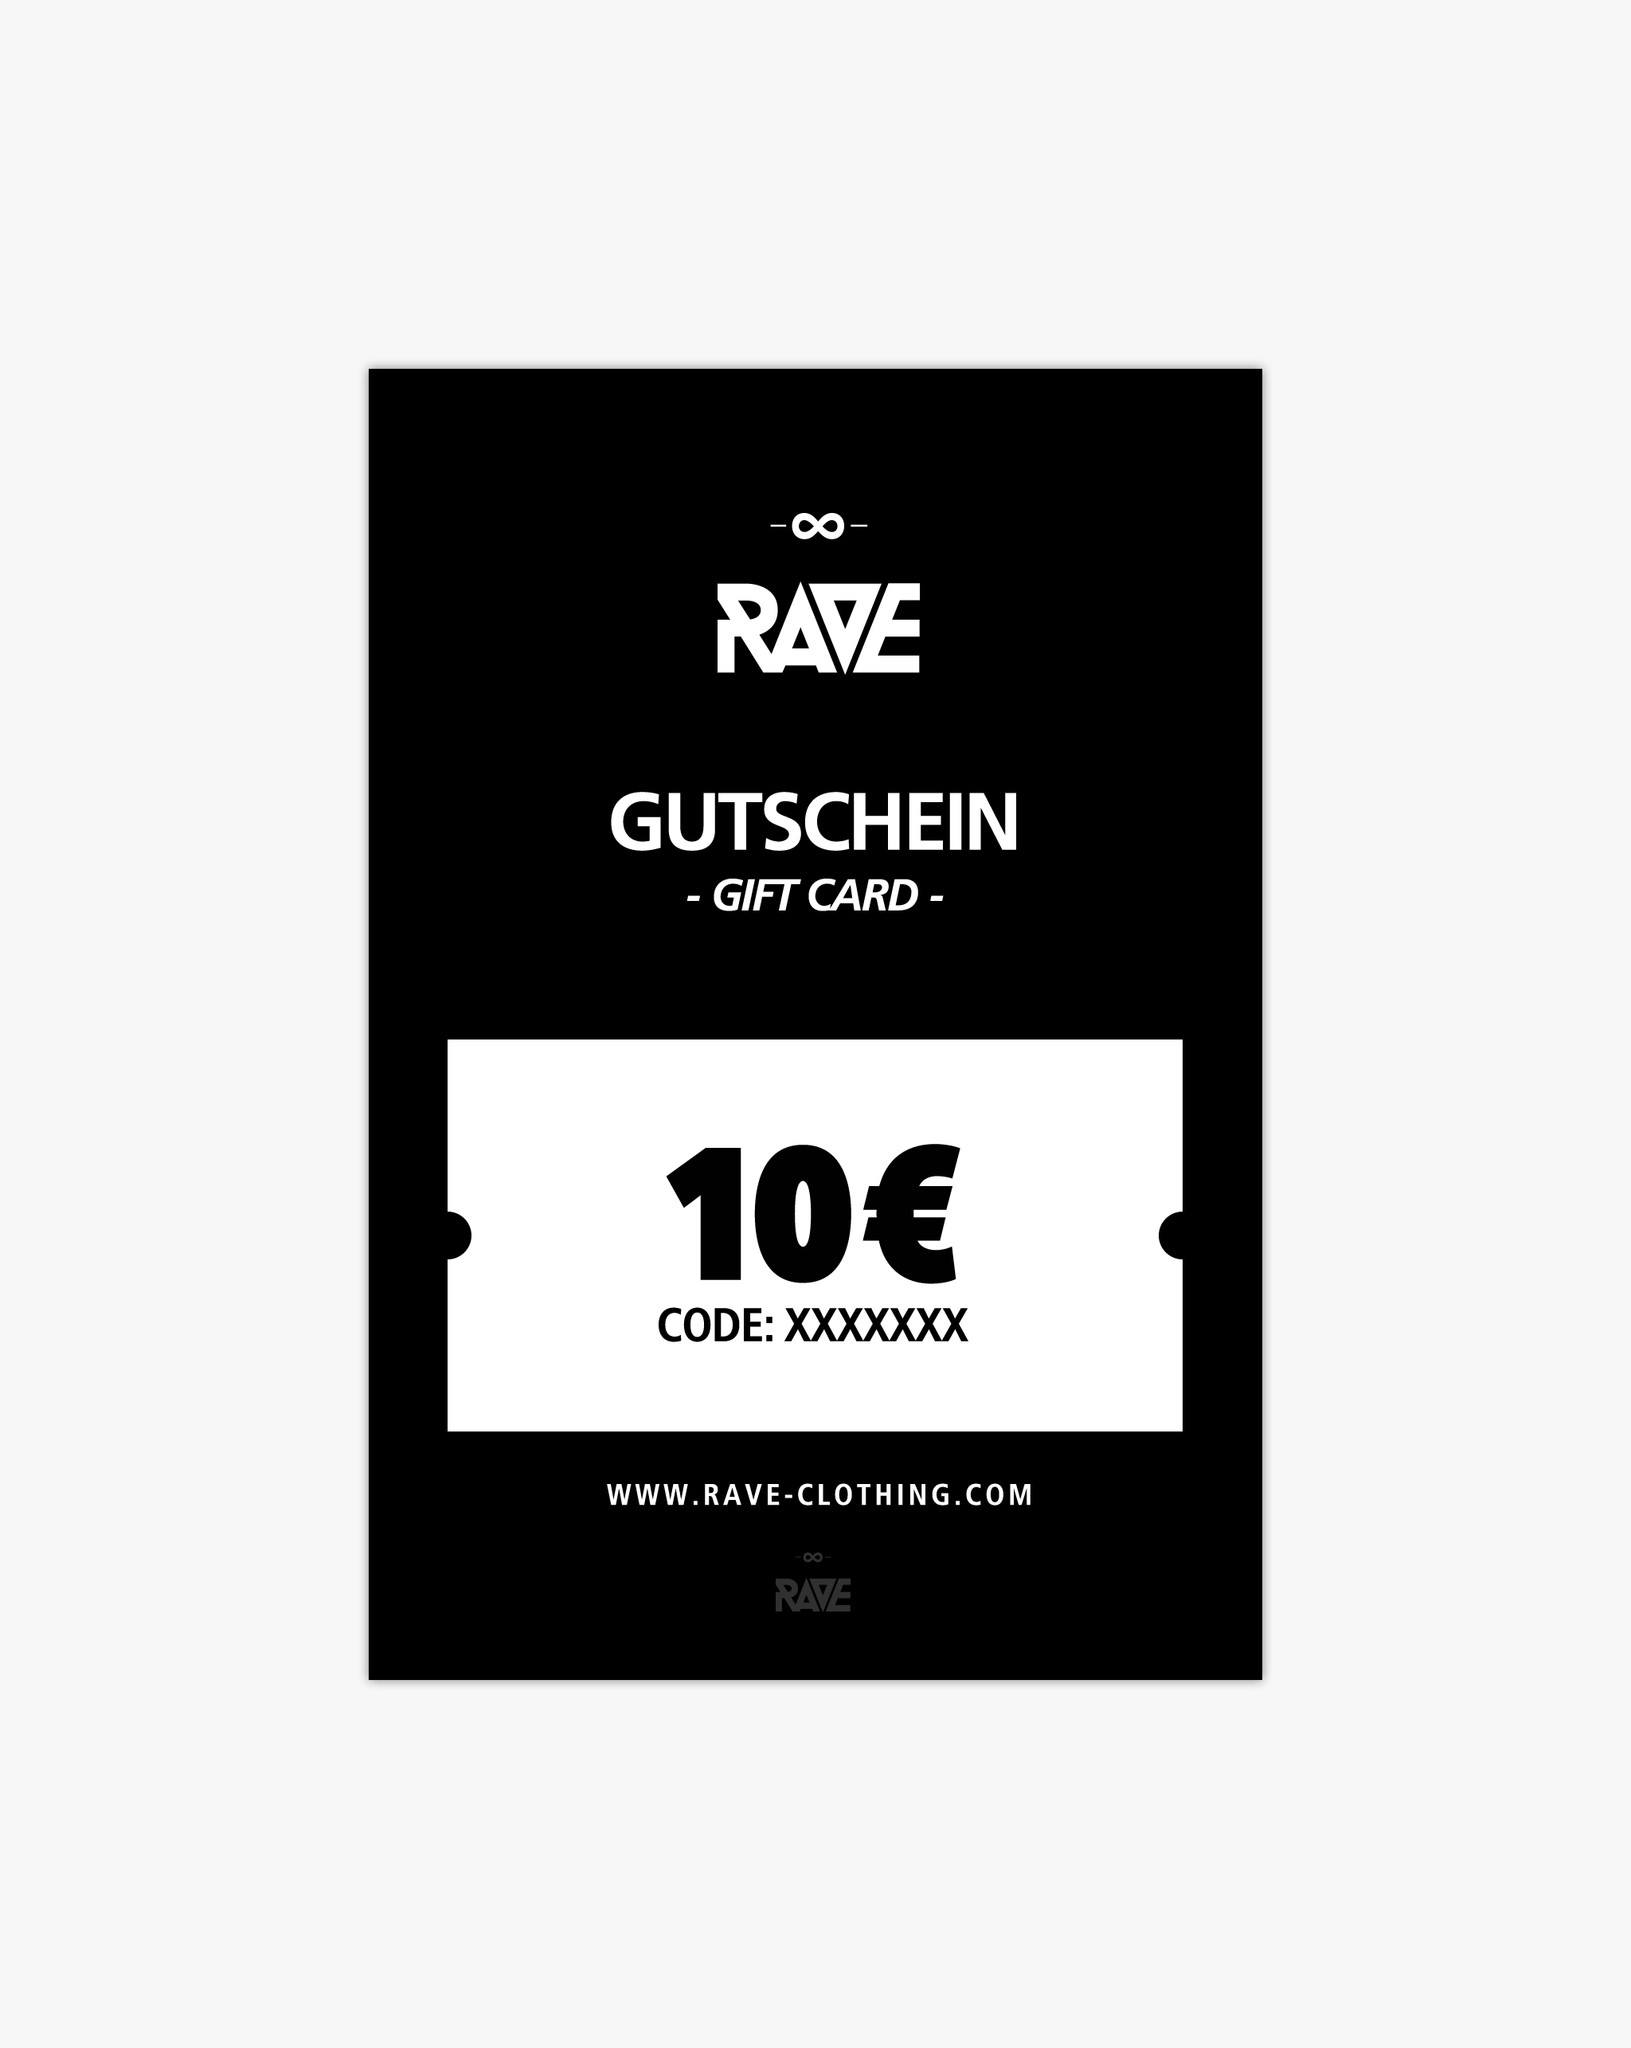 10 € gift voucher from RAVE Clothing